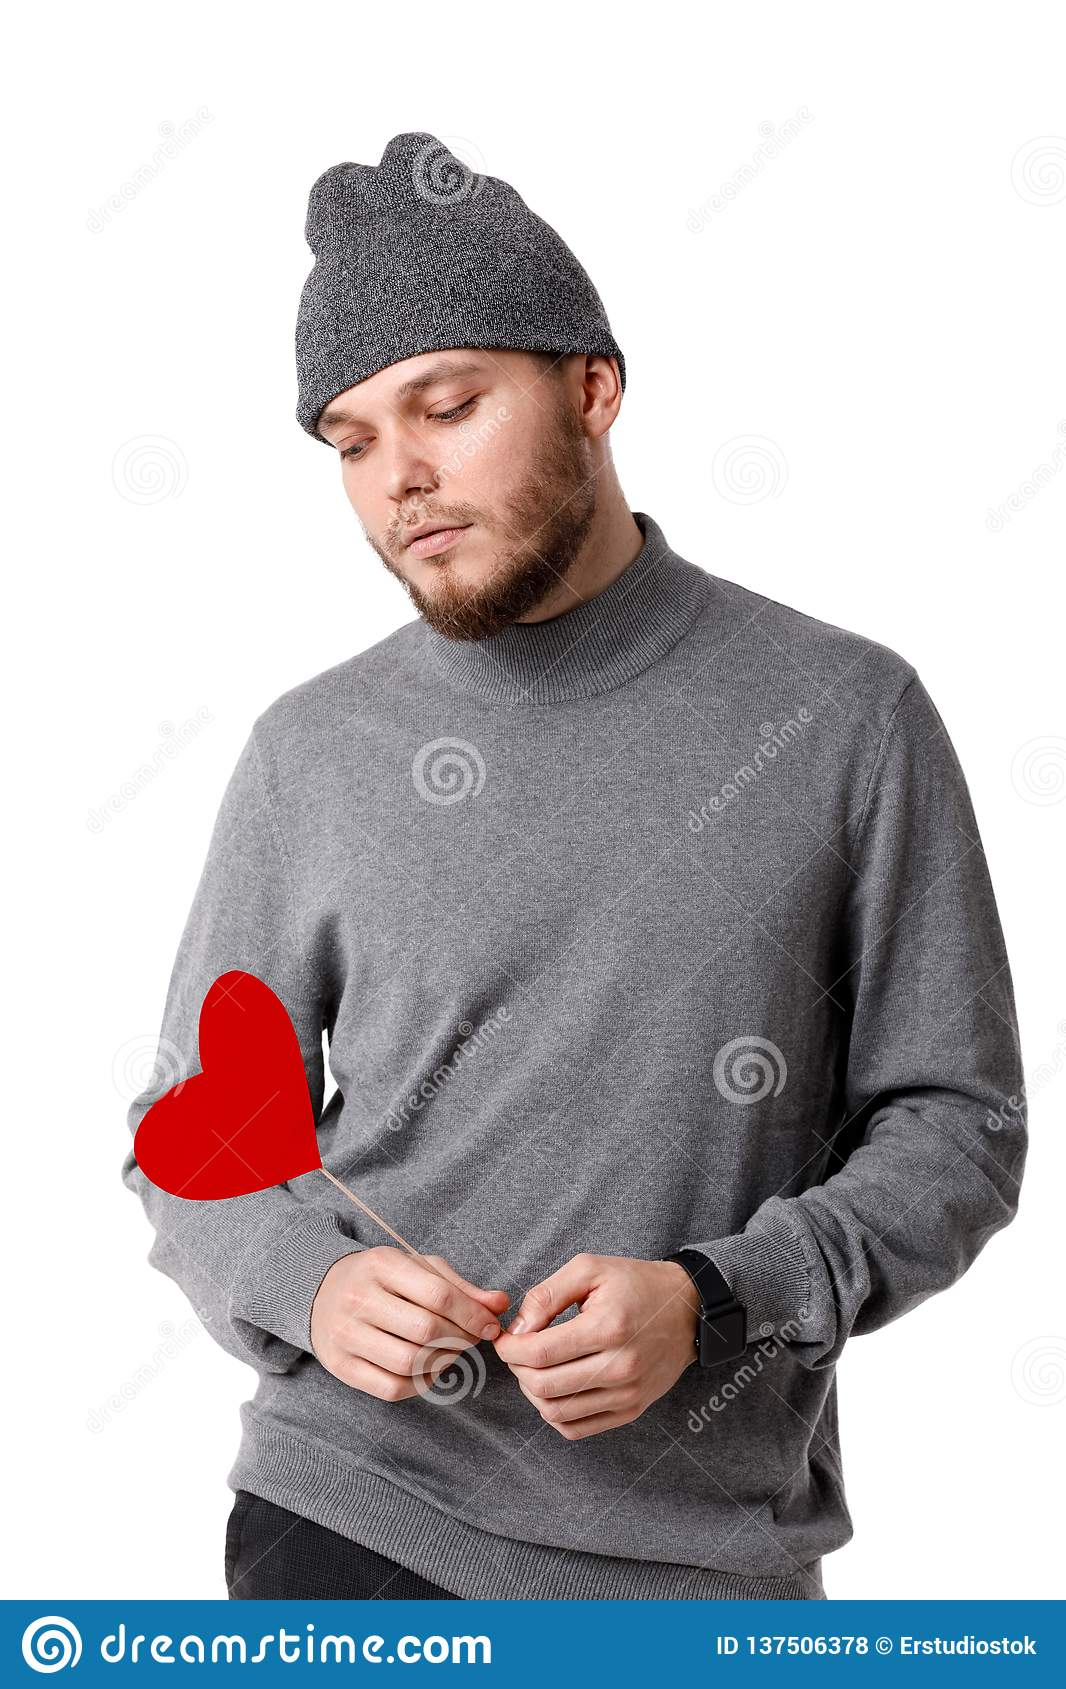 aee0fbb33ef Young Happy Man Holding Red Paper Heart. Stock Photo - Image of ...